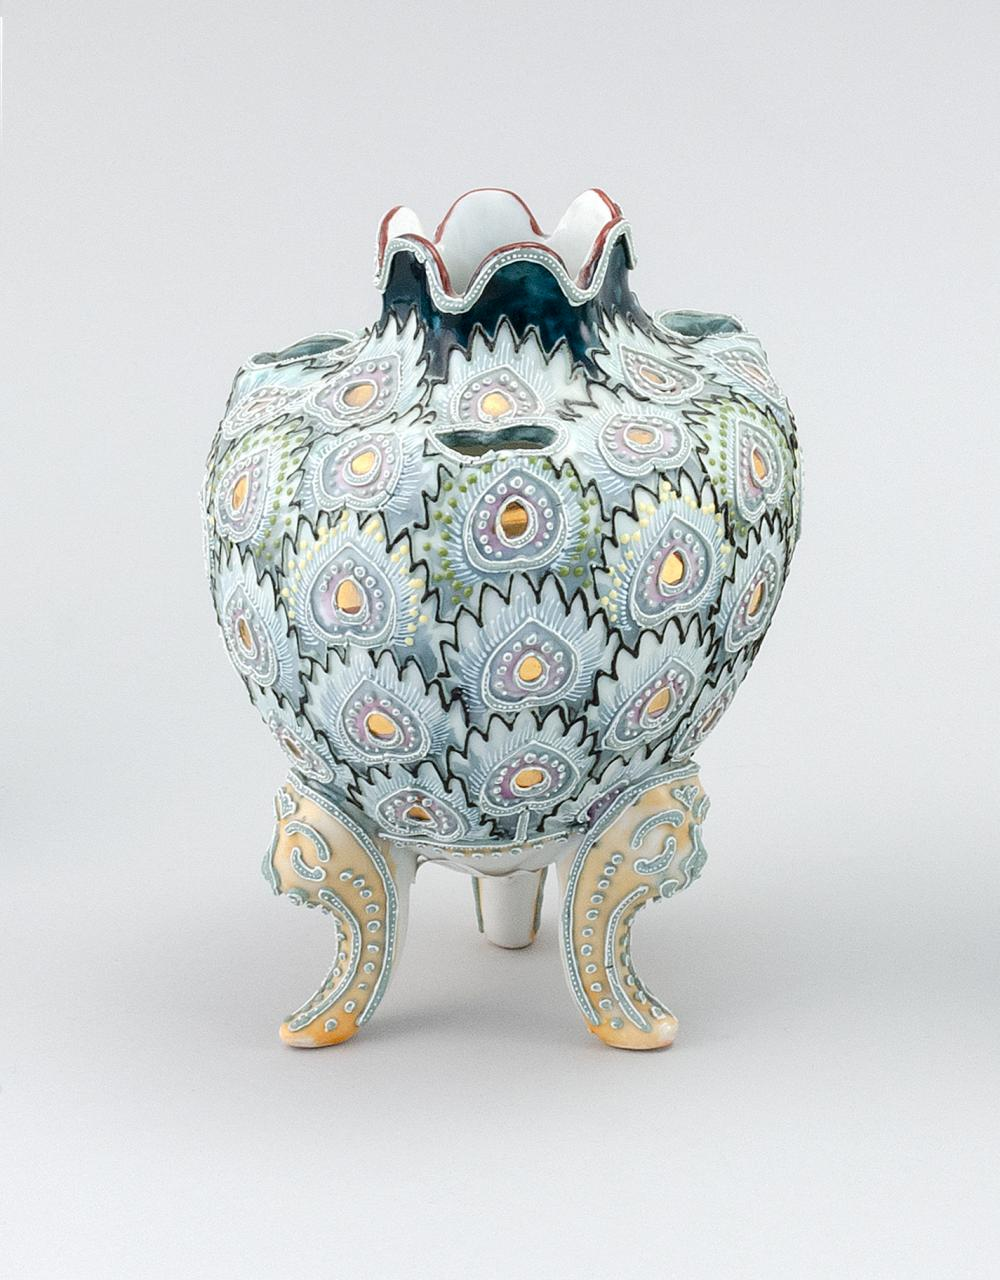 """MORIAGE NIPPON PORCELAIN NARCISSUS VASE Ovoid, with peacock feather design. Van Patten #90 mark on base. Height 7""""."""